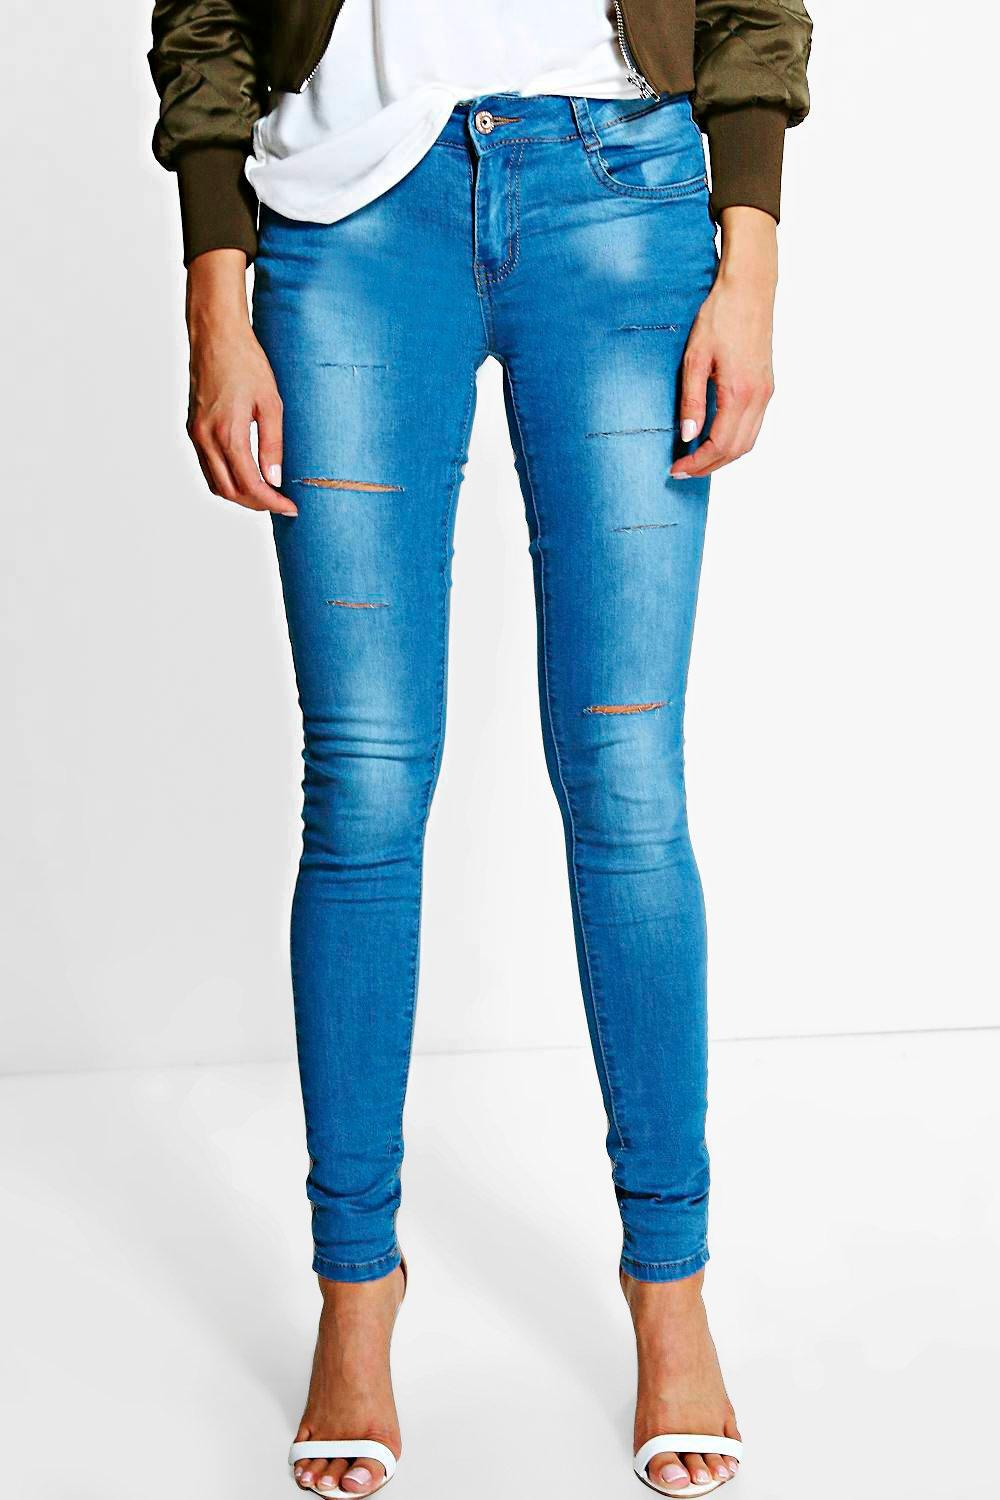 Low Rise Cloudy Wash Knee Rip Jeans mid blue